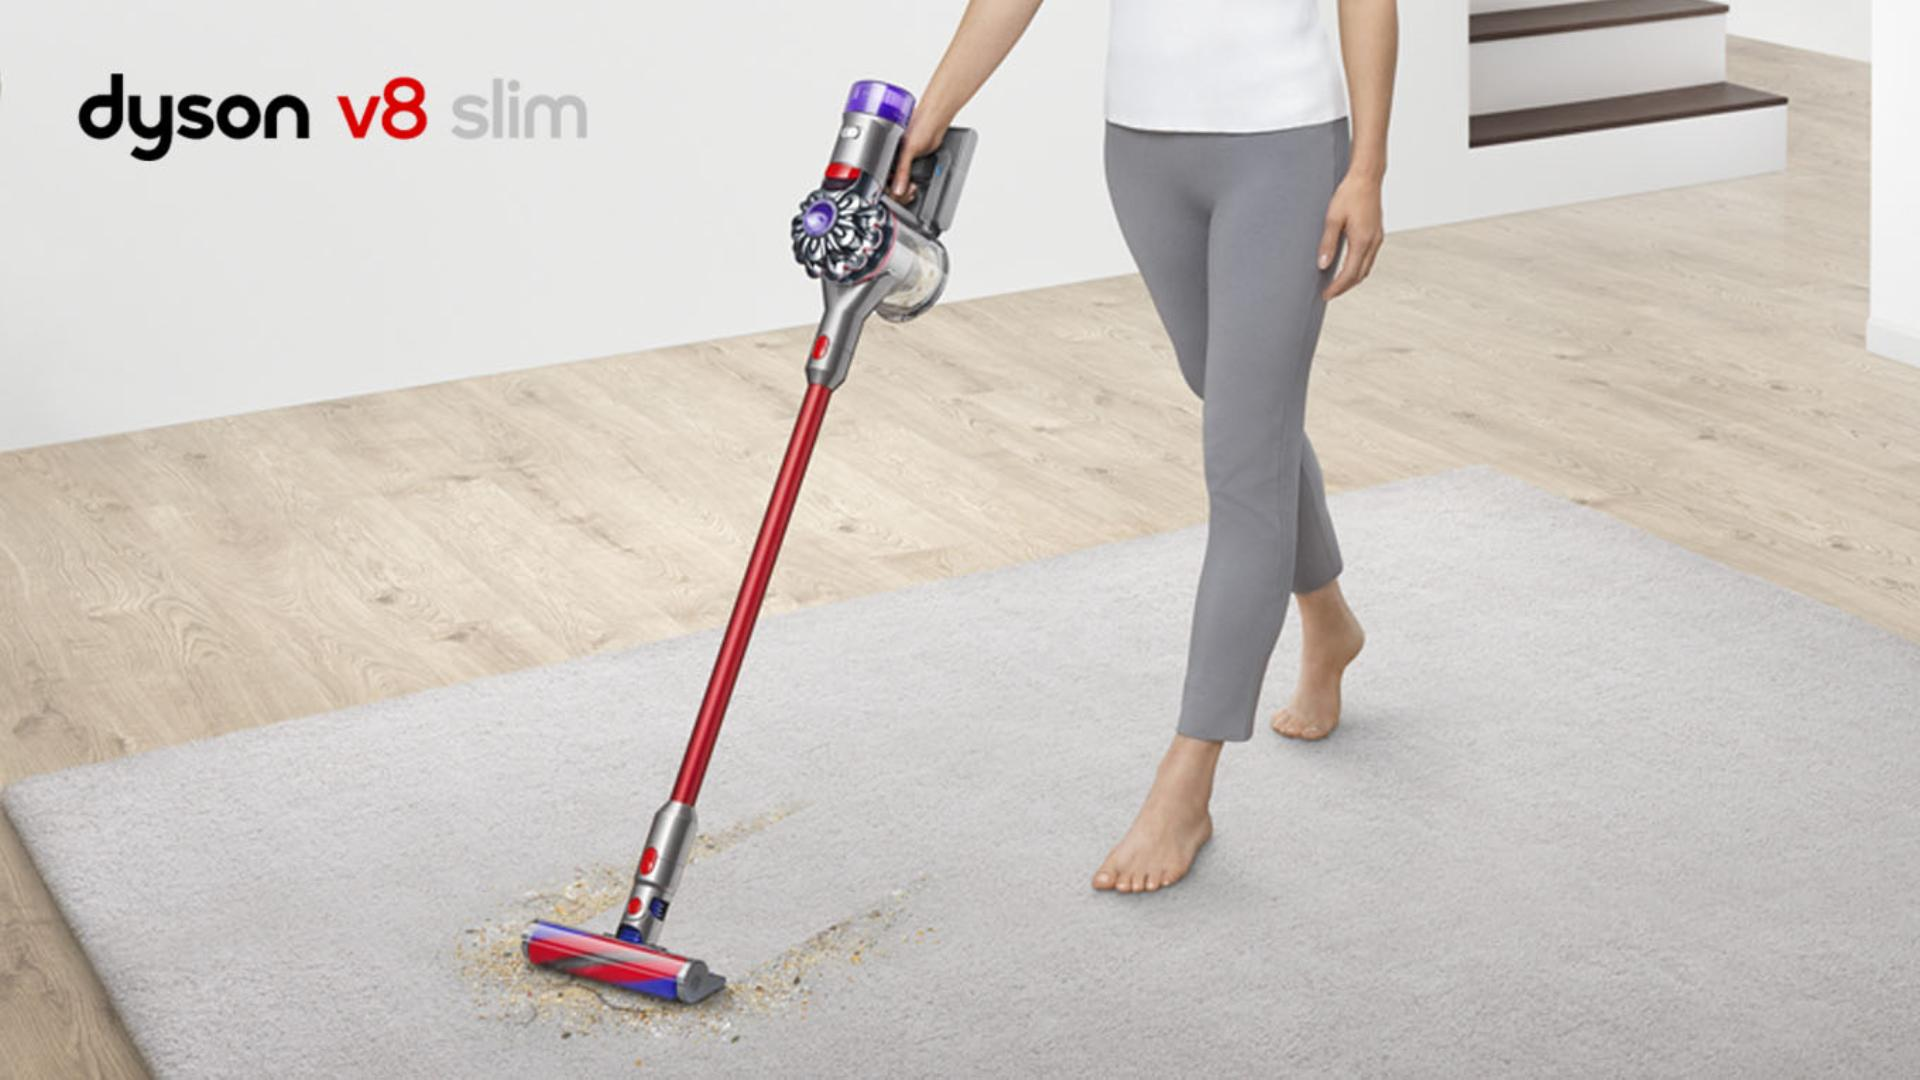 Dyson v8 slim being used on flooring